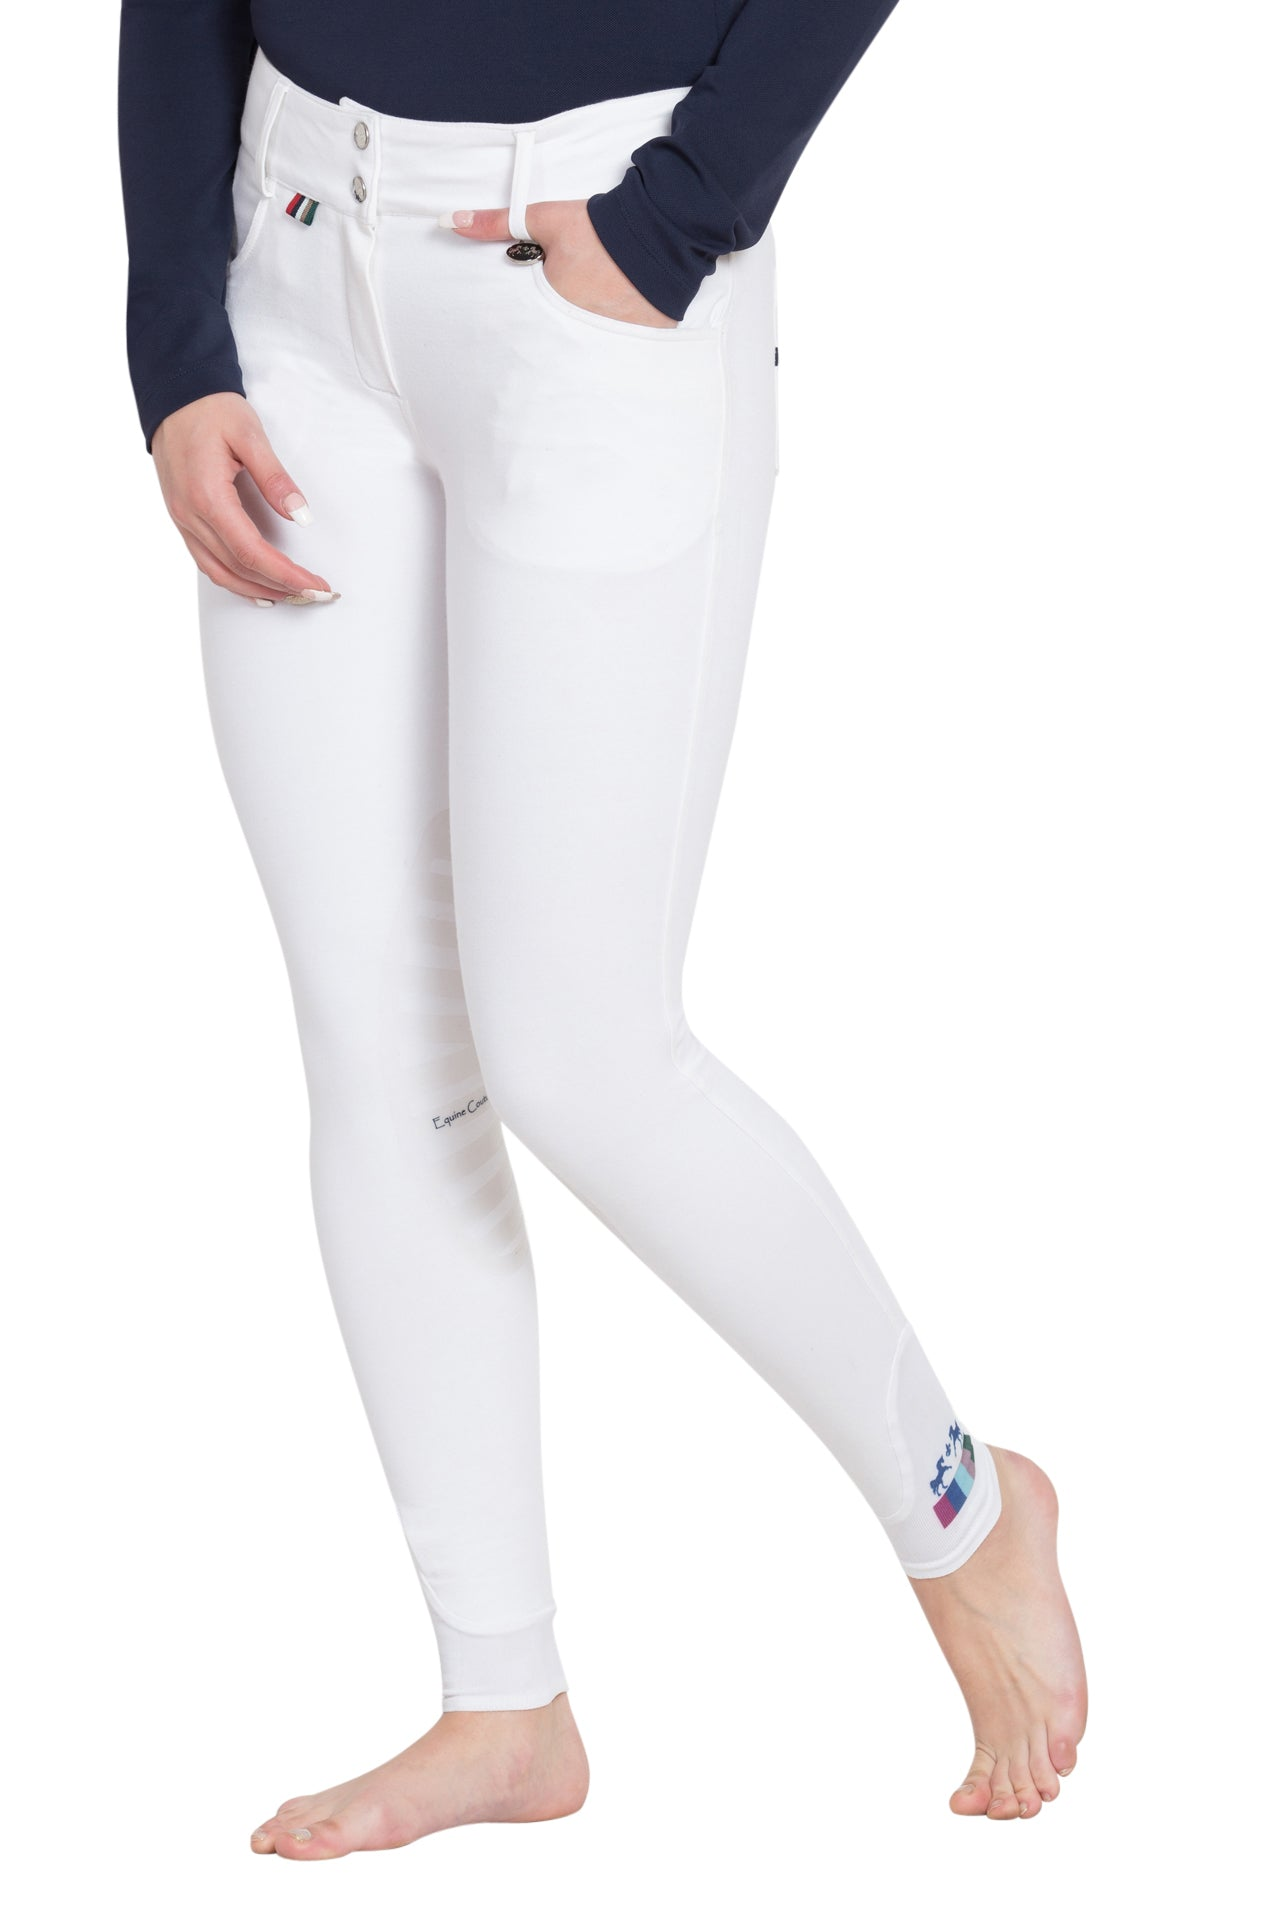 Equine Couture Ladies Sophie Silicone Knee Patch Breeches - Equine Couture - Breeches.com